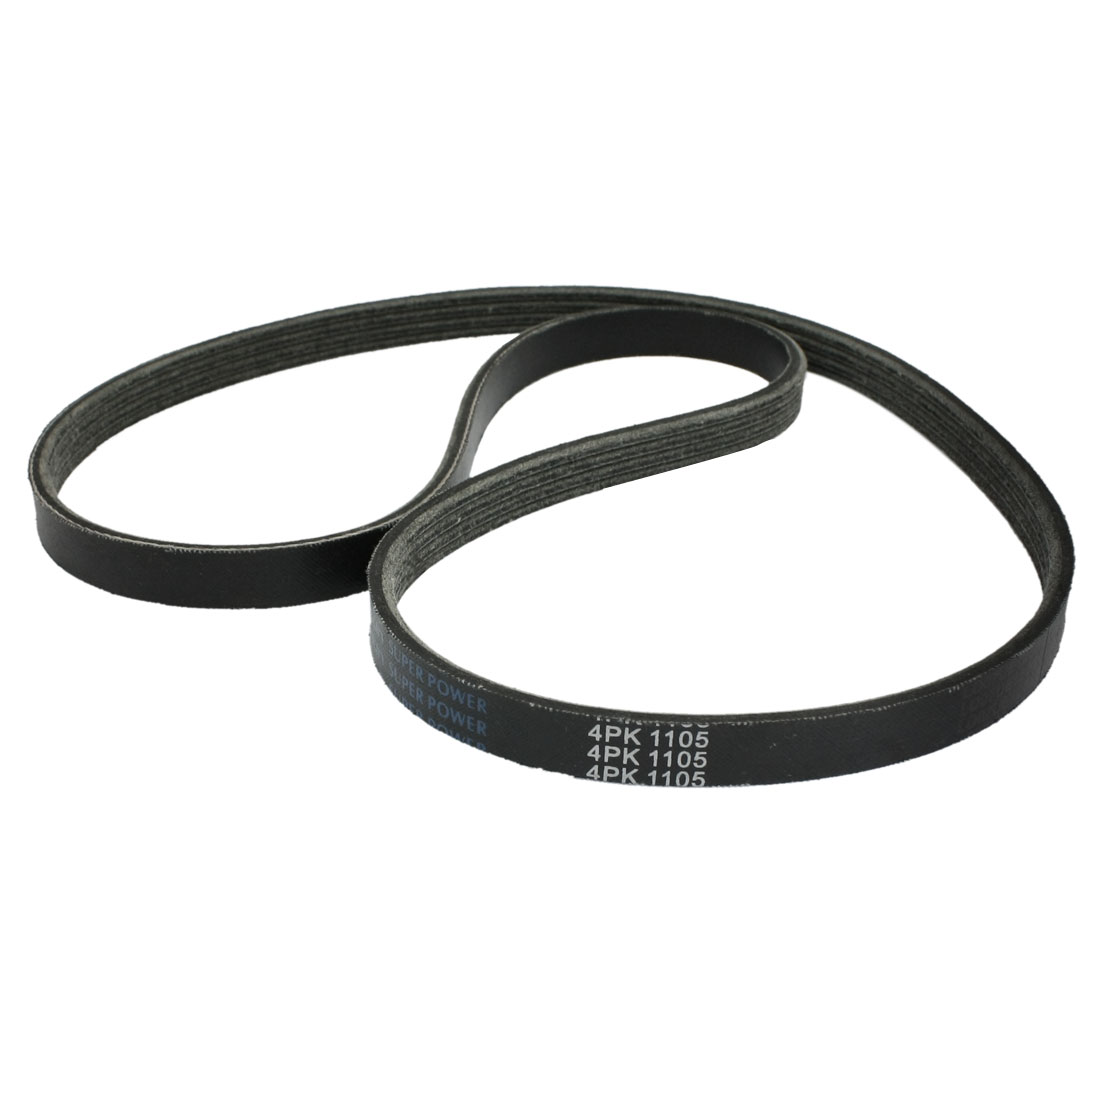 Car Accessory Ribbed Serpentine Belt Assembly 4PK1105